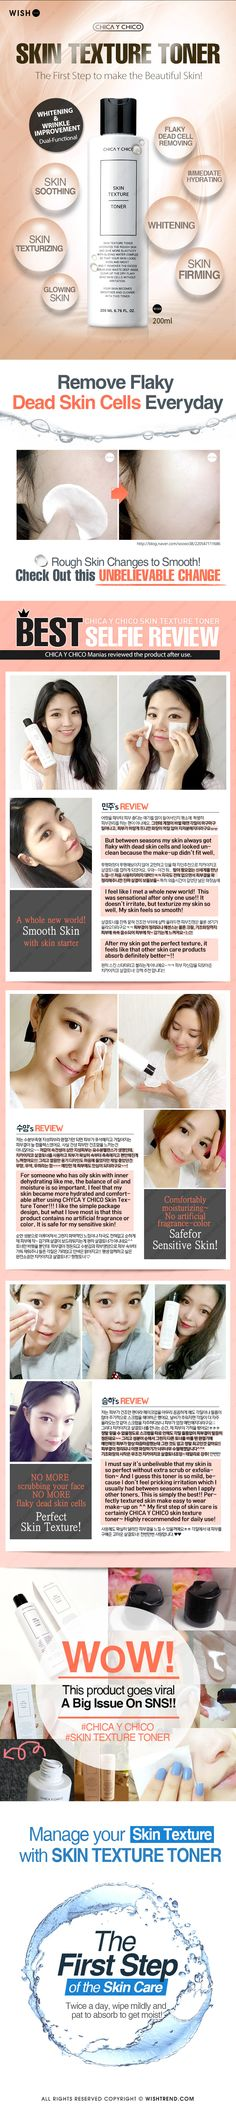 [CHICA Y CHICO] SKIN TEXTURE TONER / Remove flaky dead skin cells everyday.